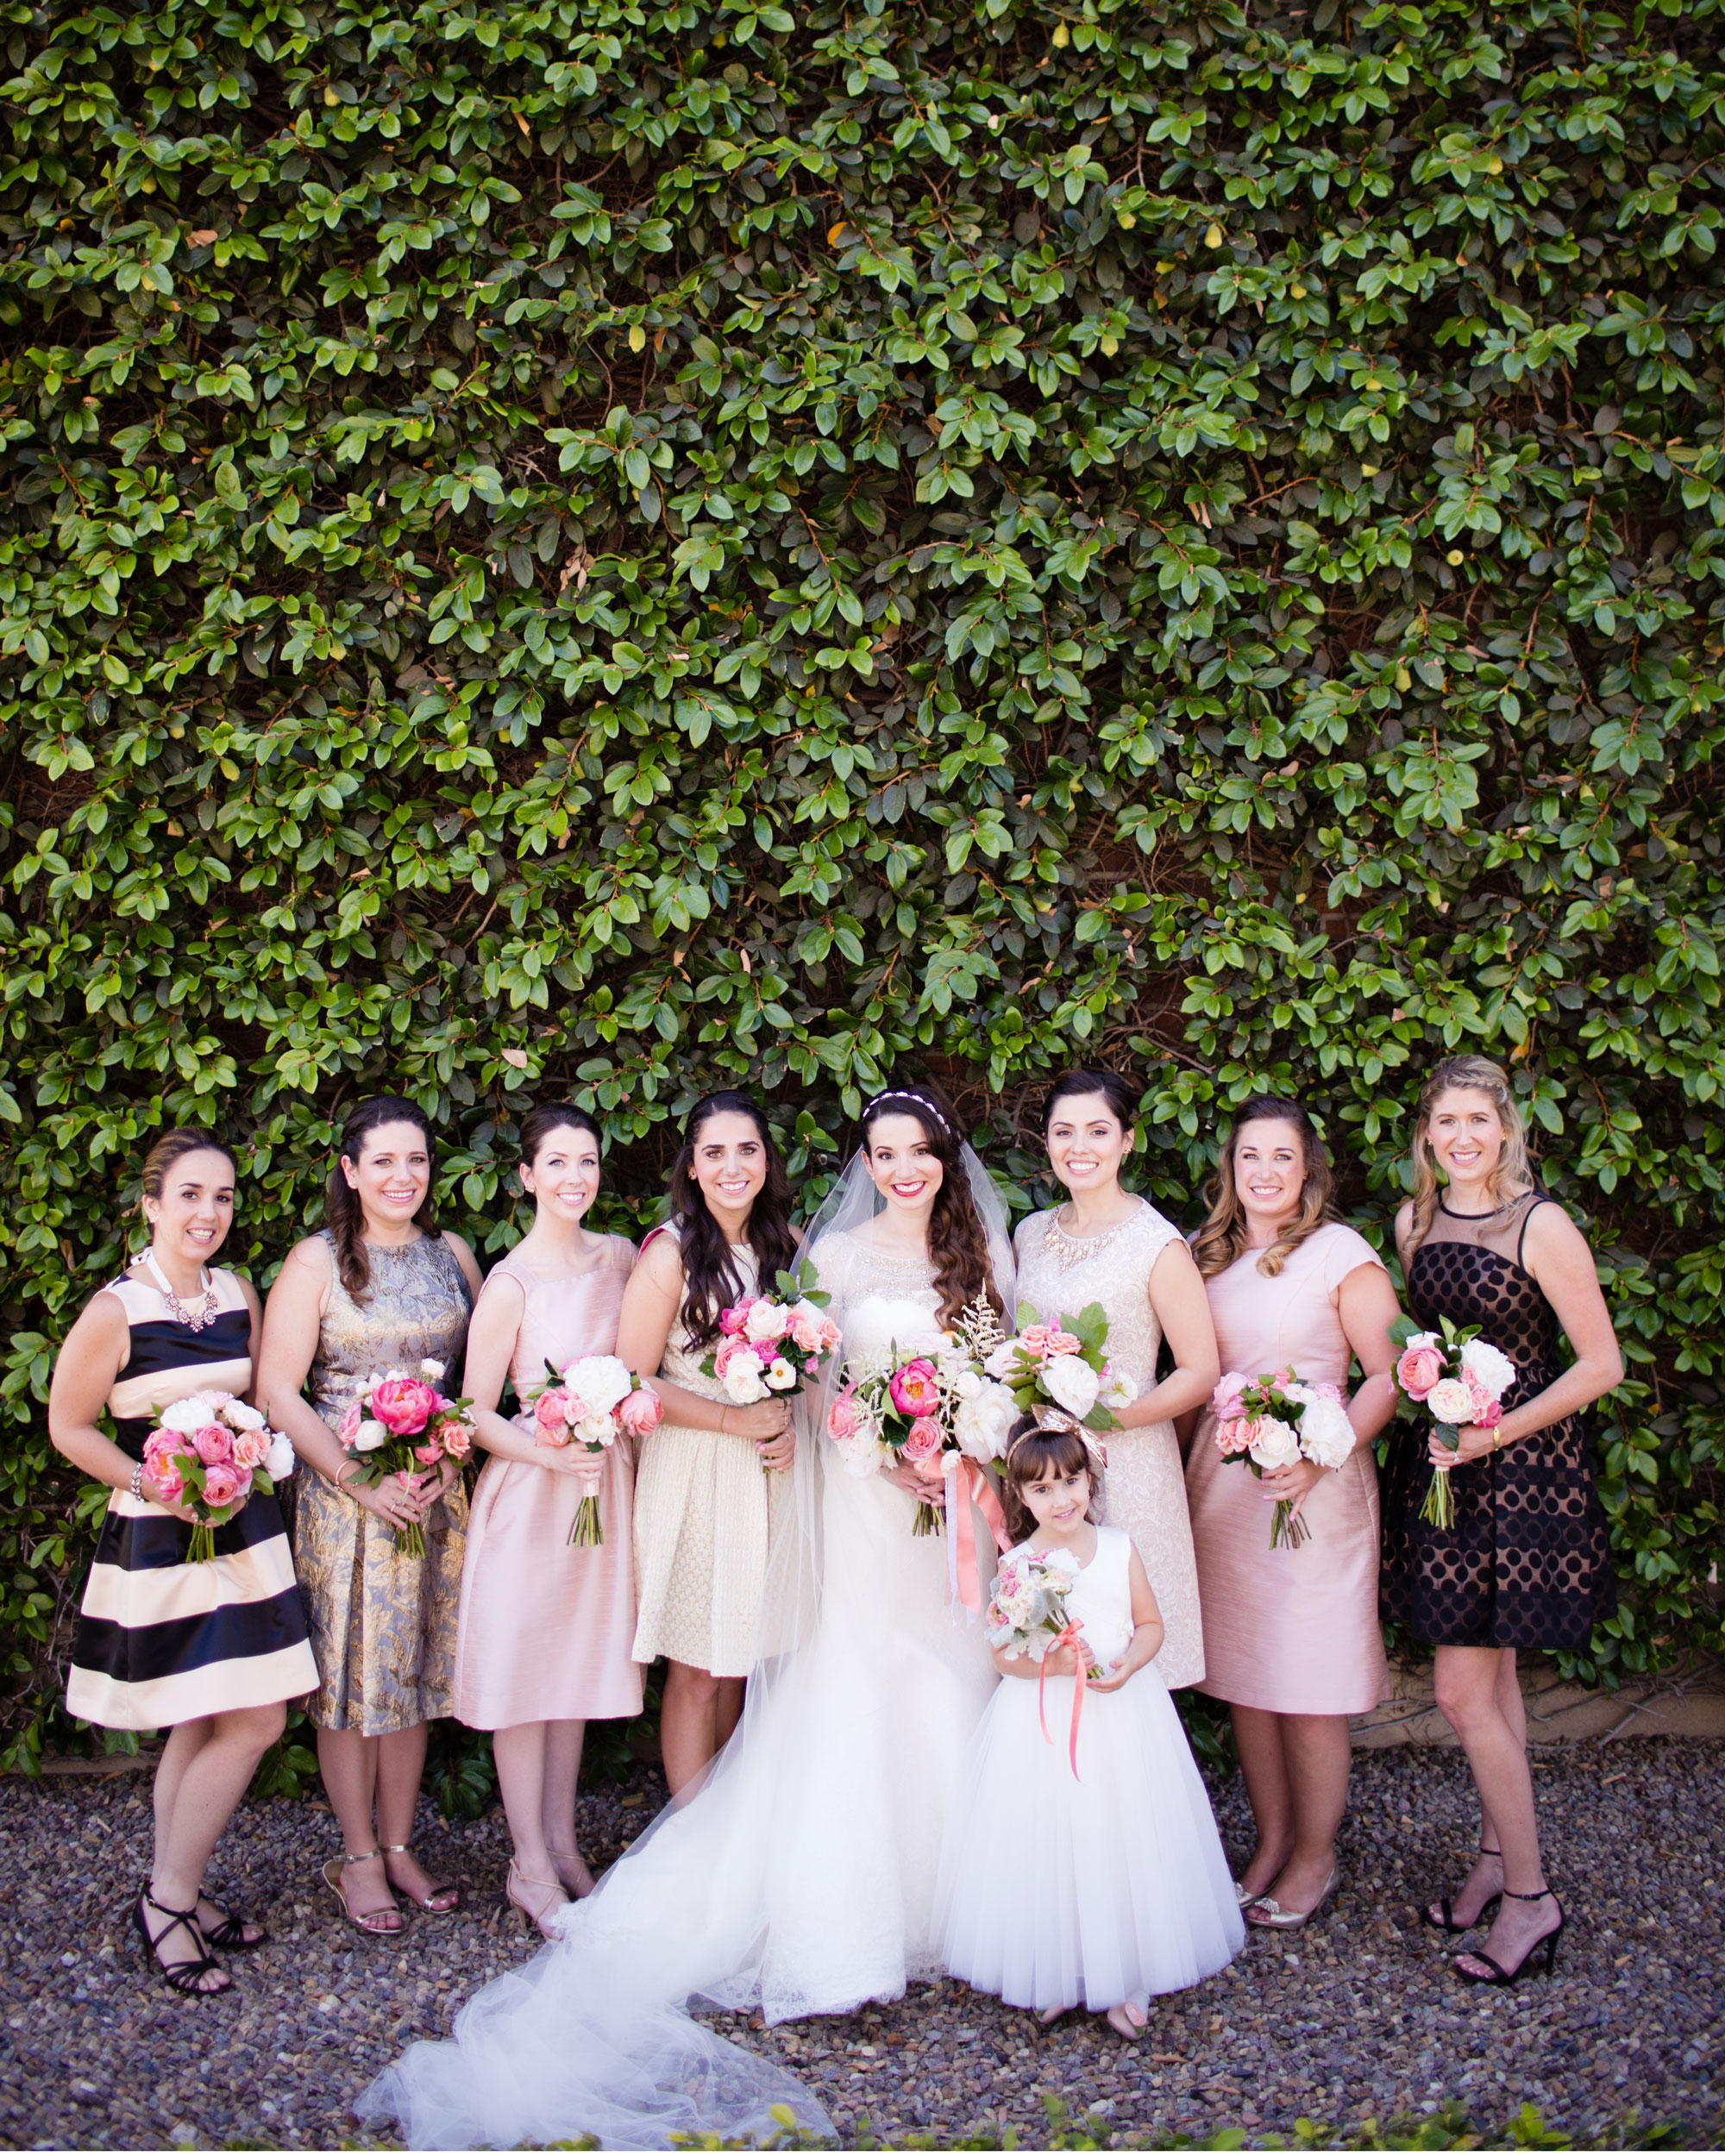 richelle-tom-wedding-bridesmaids-346-s112855-0416.jpg